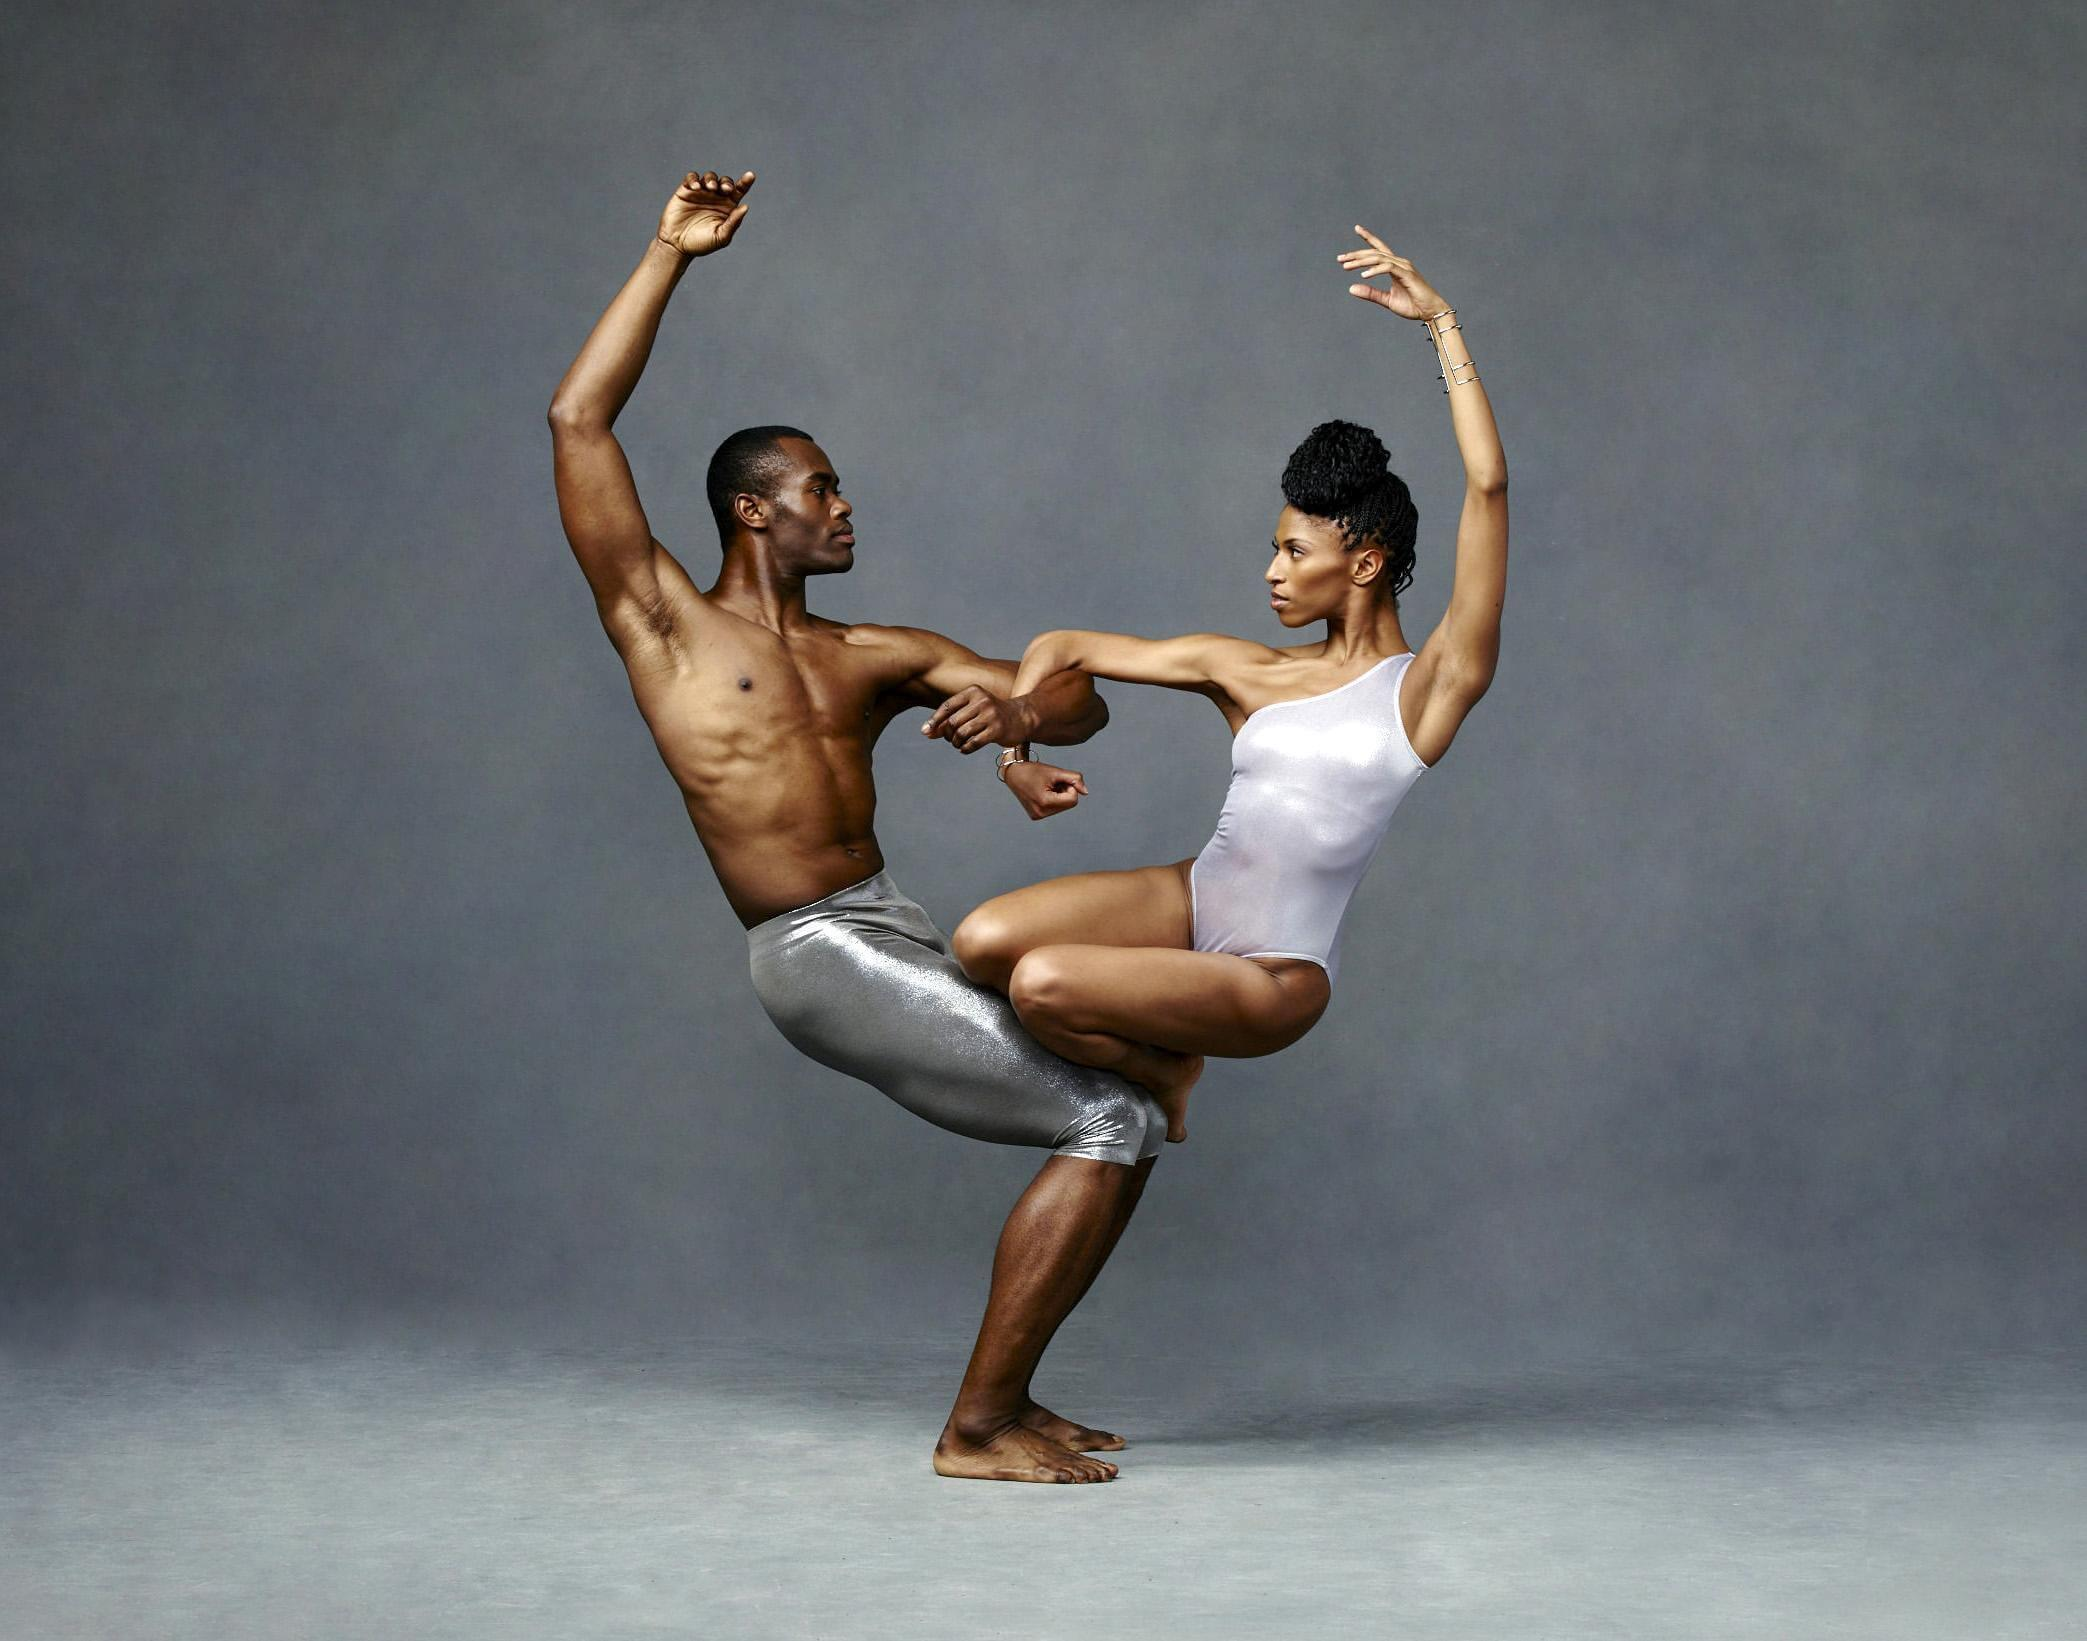 Jamar Roberts and Jacqueline Green, photo by Andrew Eccles